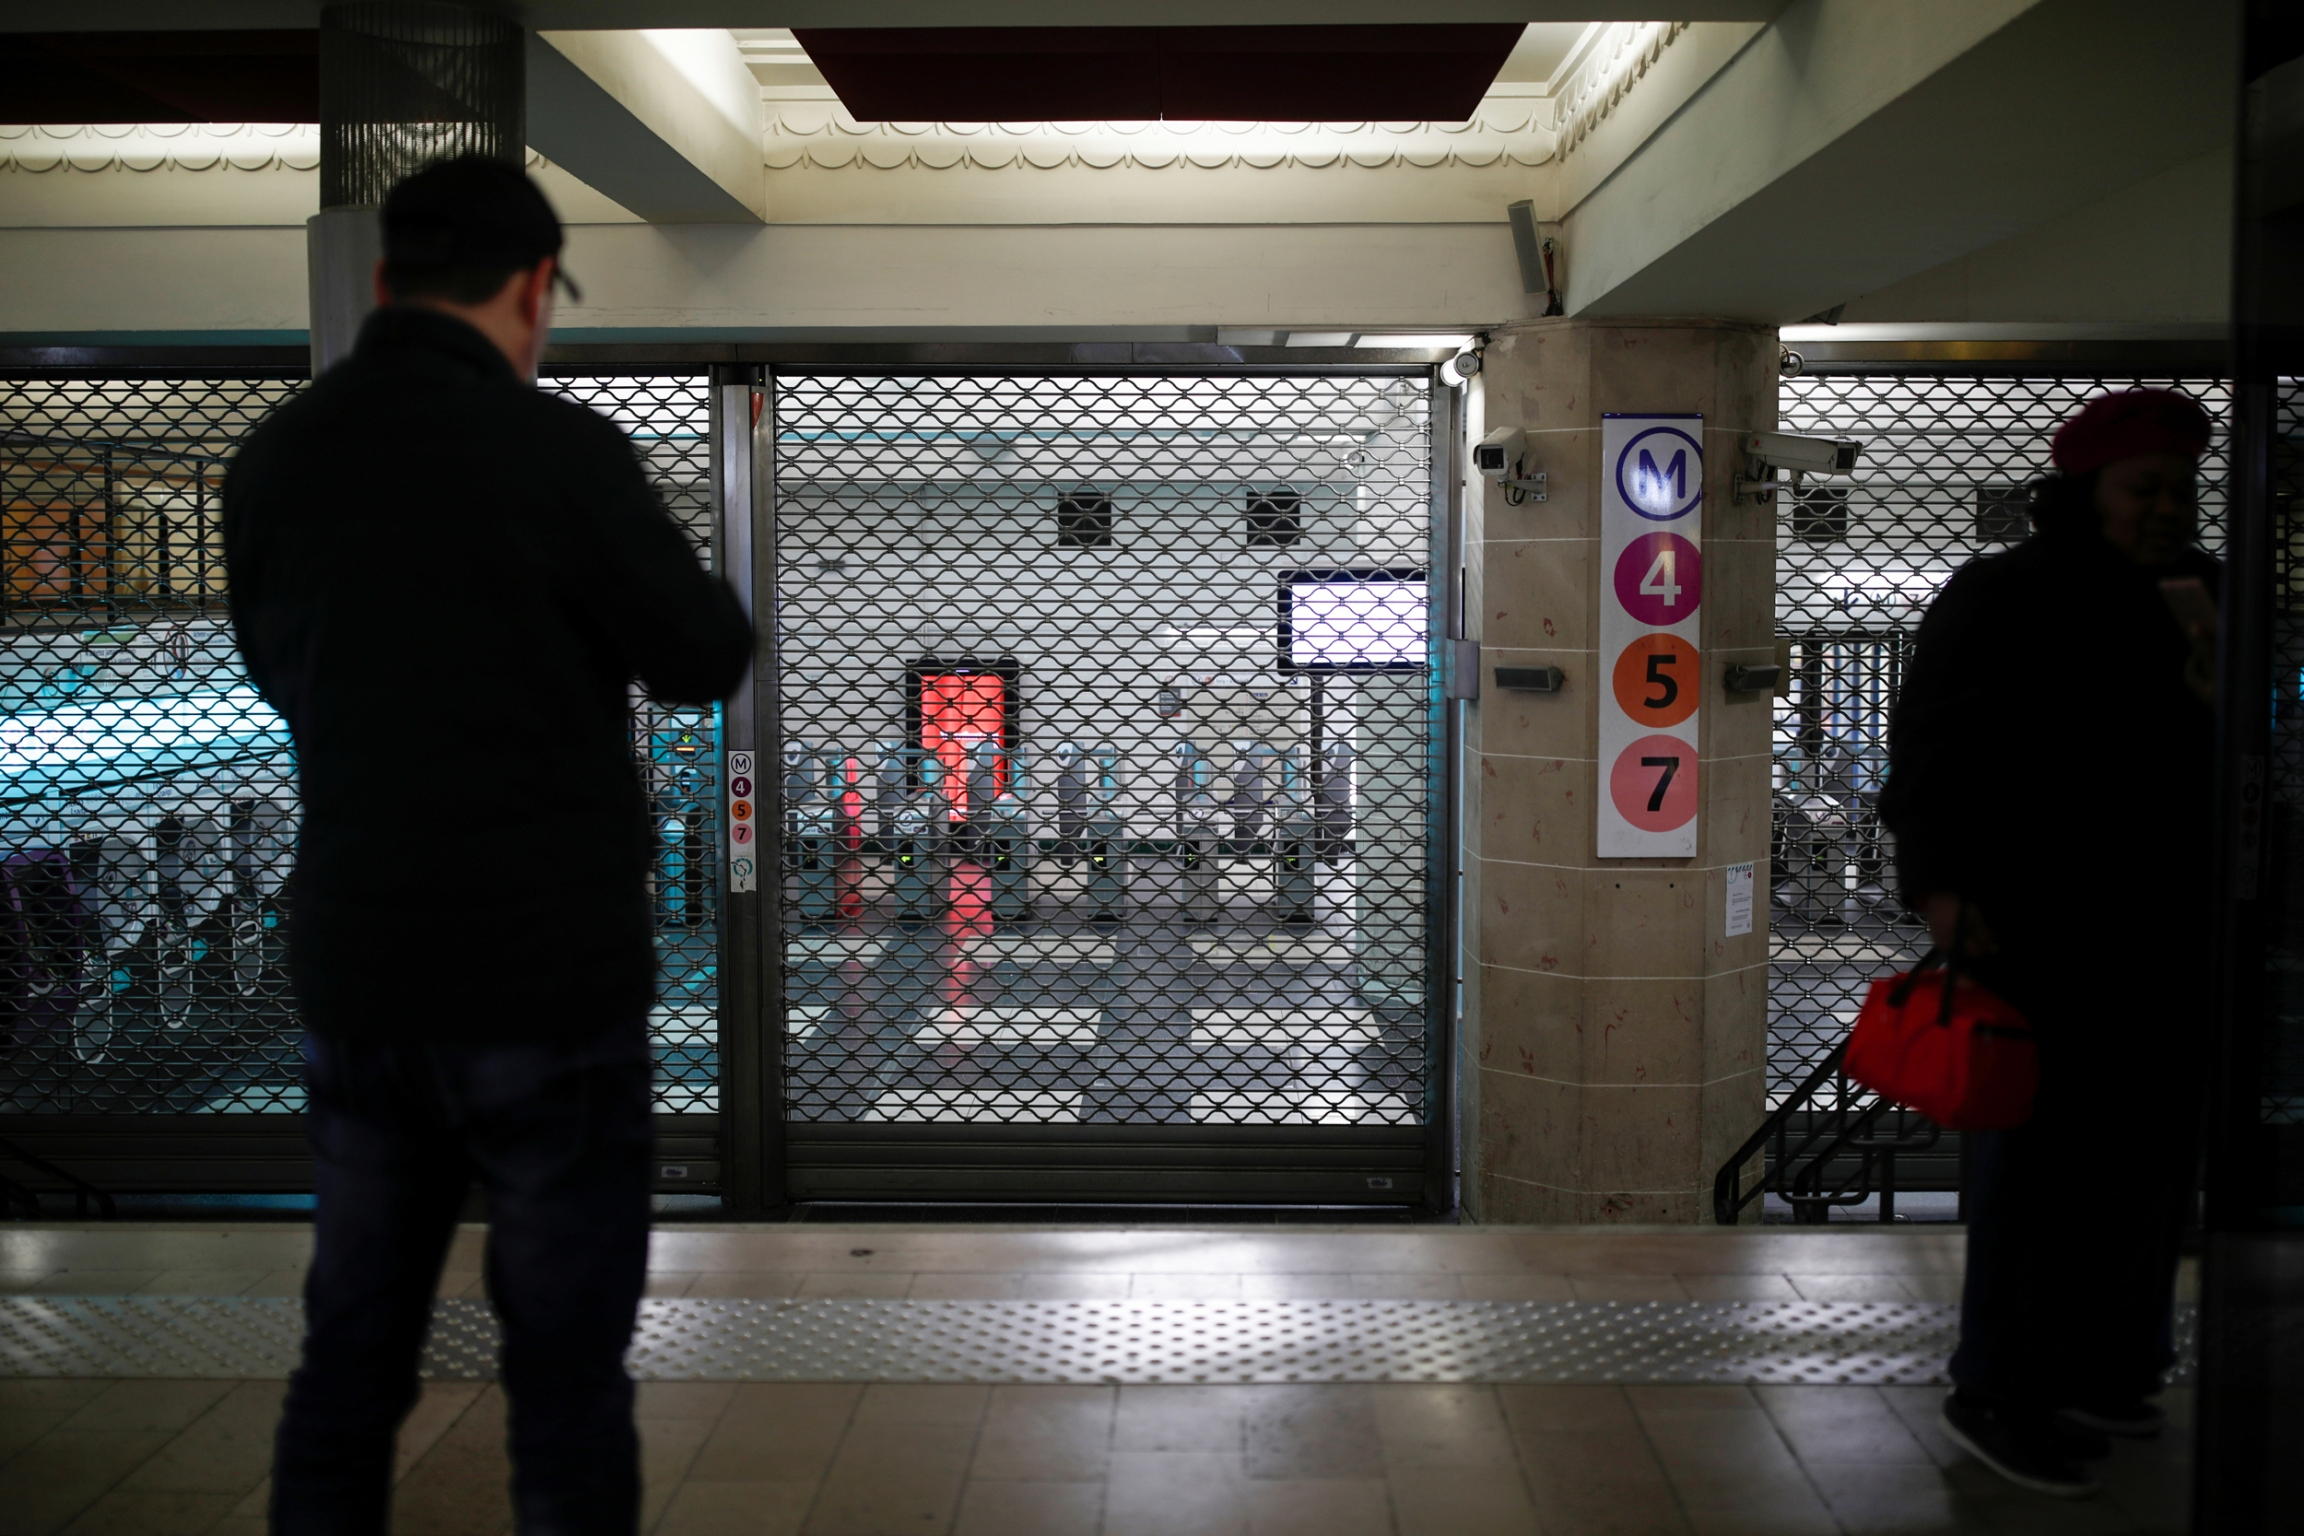 Metal gates block a closed entrance at the Gare de l'Est metro station with a man standing in shadow in the nearground looking on.